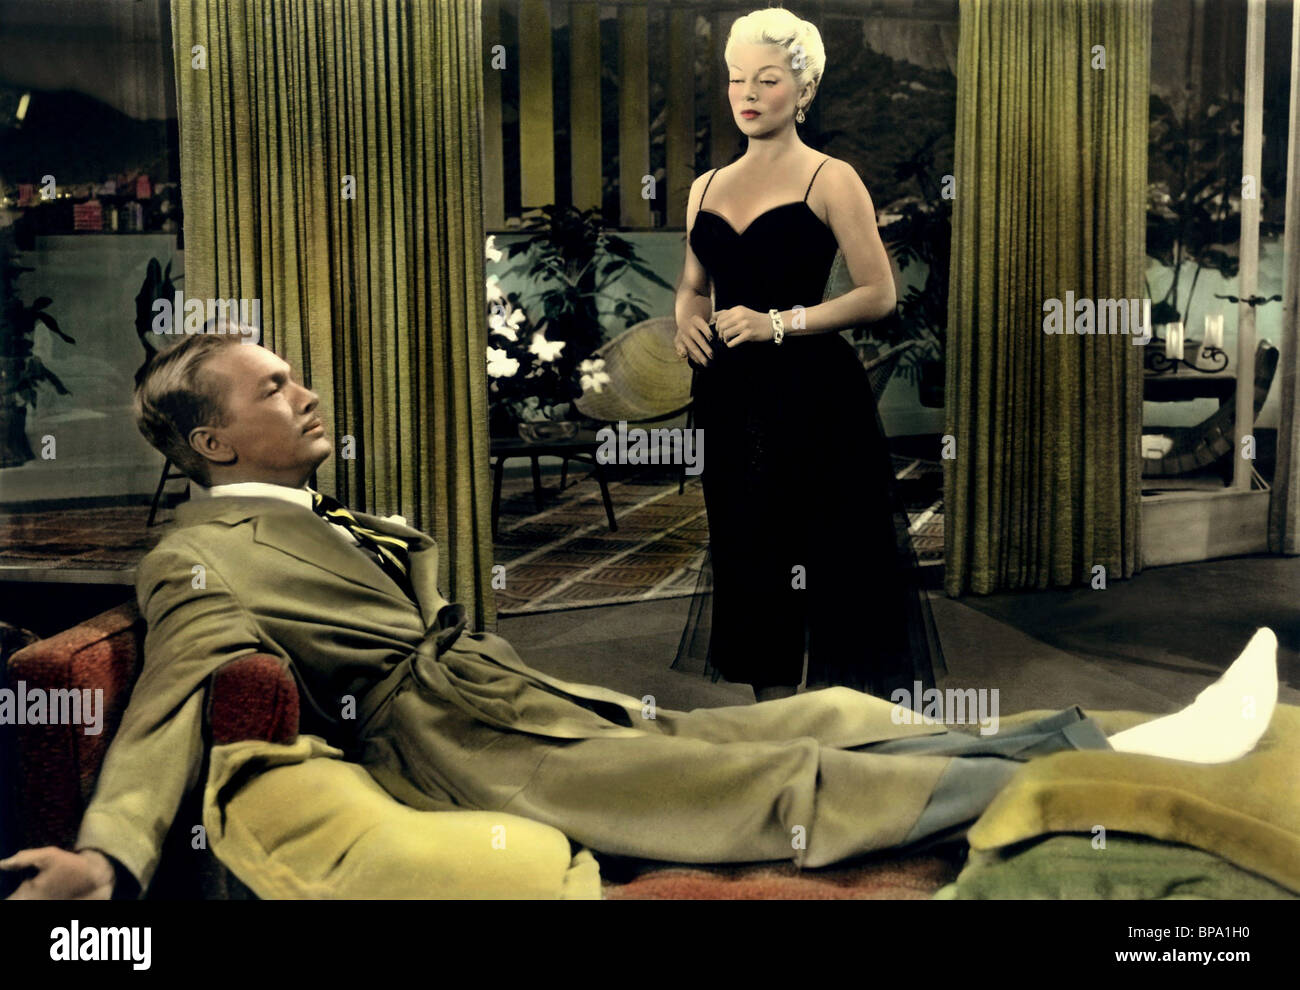 JOHN LUND, Lana Turner, Latin Lovers, 1953 Immagini Stock